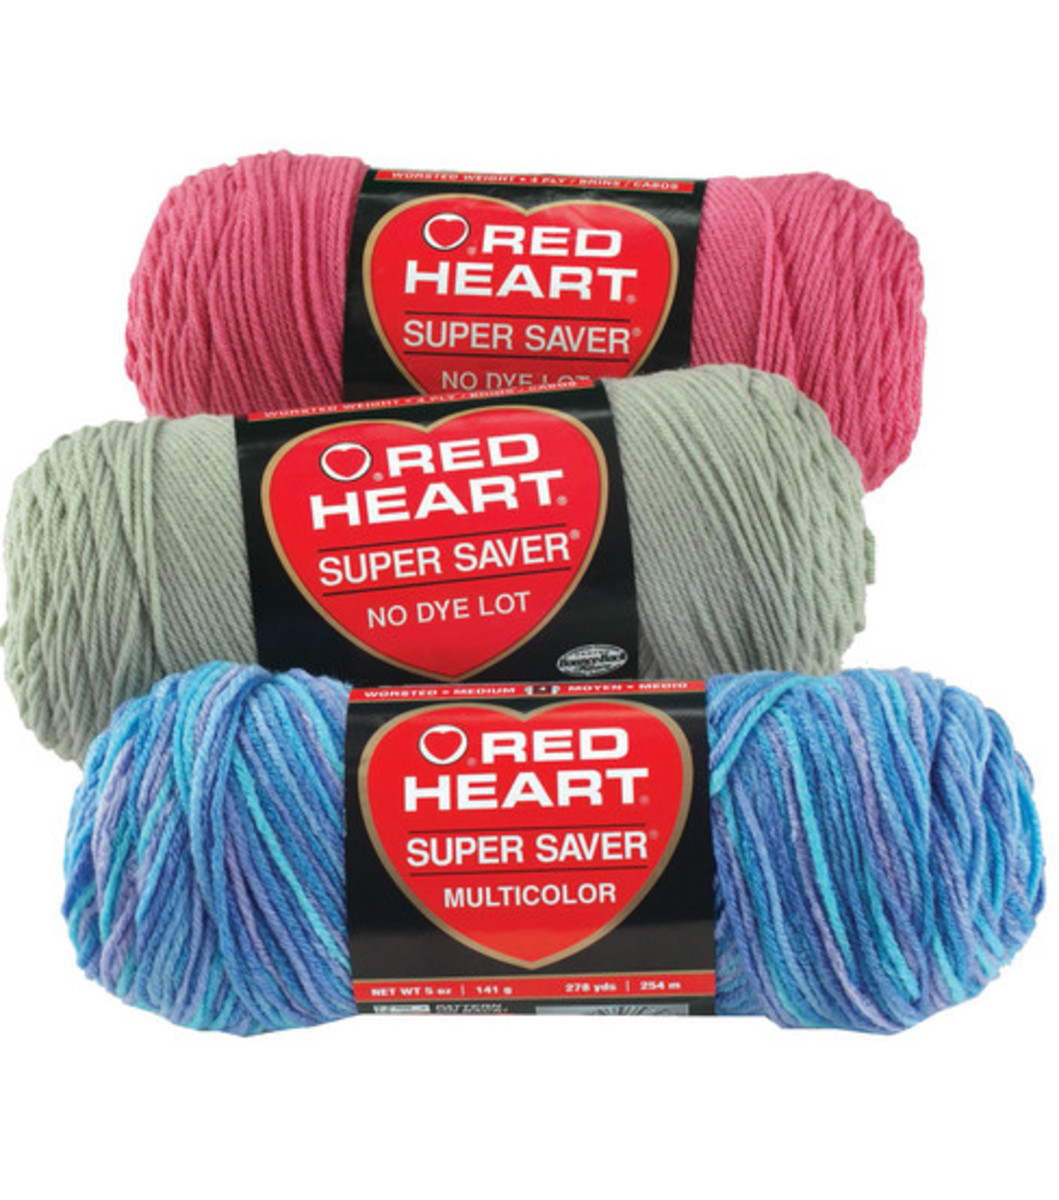 My favorite and least expensive yarn - the yarn I learned on!